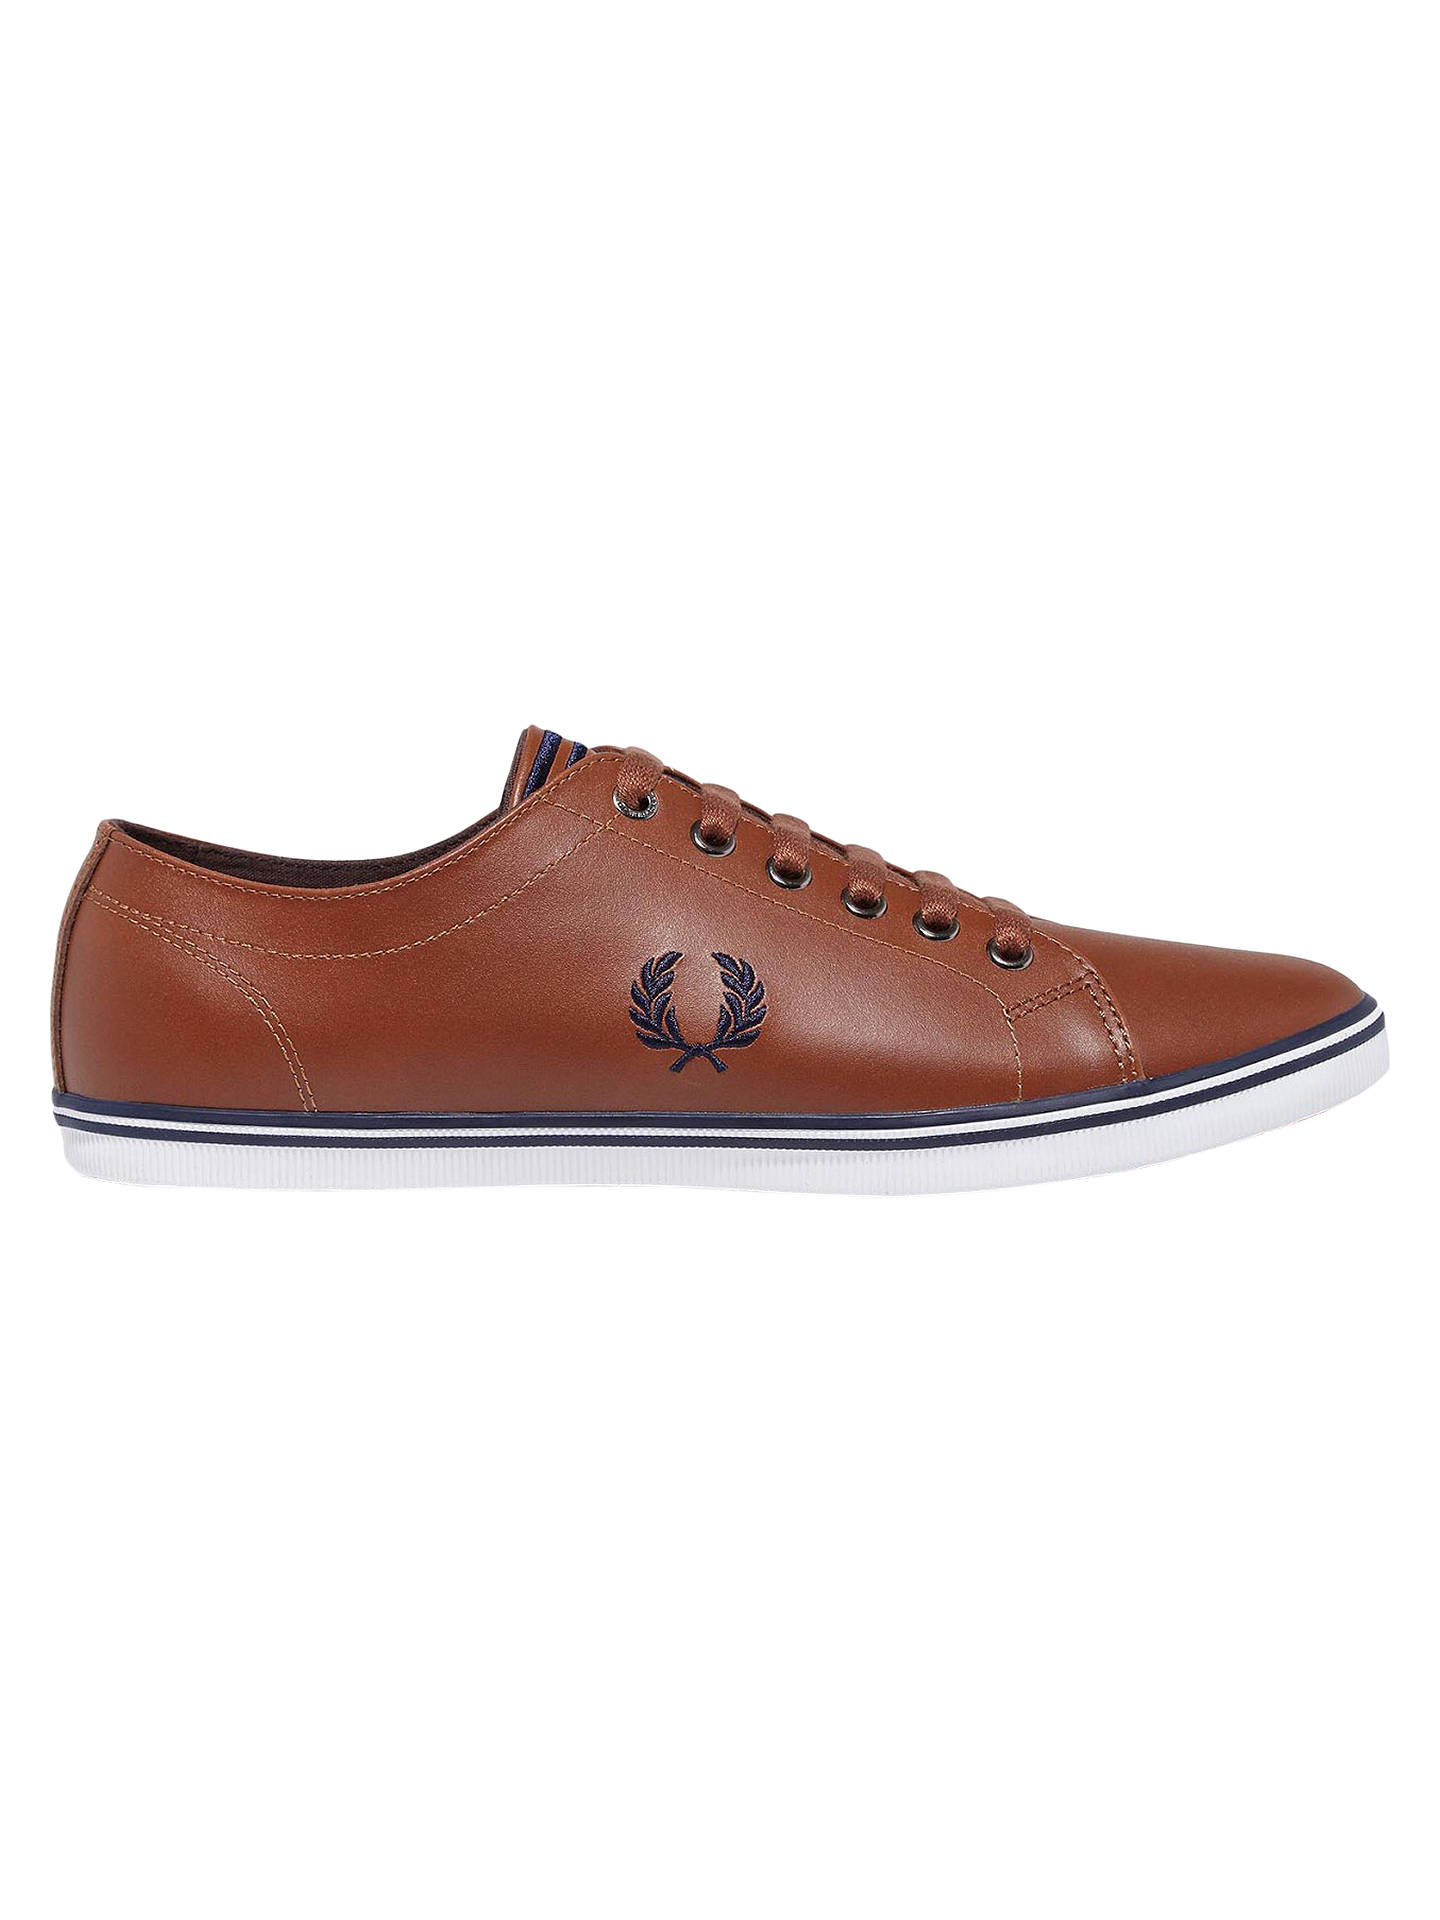 new release 50% off later Fred Perry Kingston Leather Trainers, Tan at John Lewis & Partners